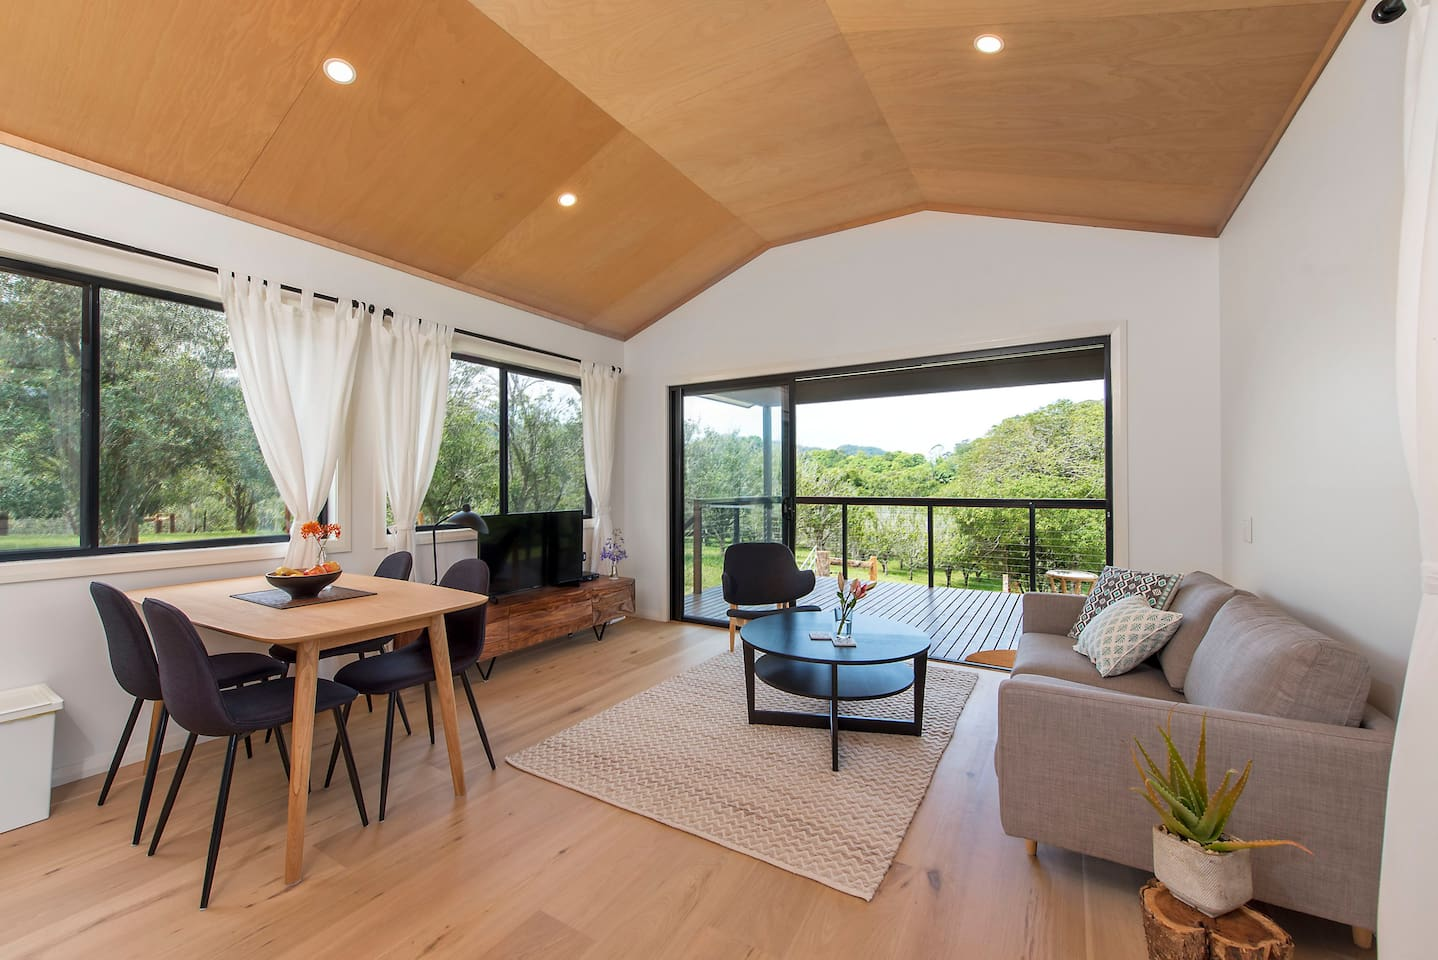 Lounge room and verandah with beautiful view over macadamia orchard